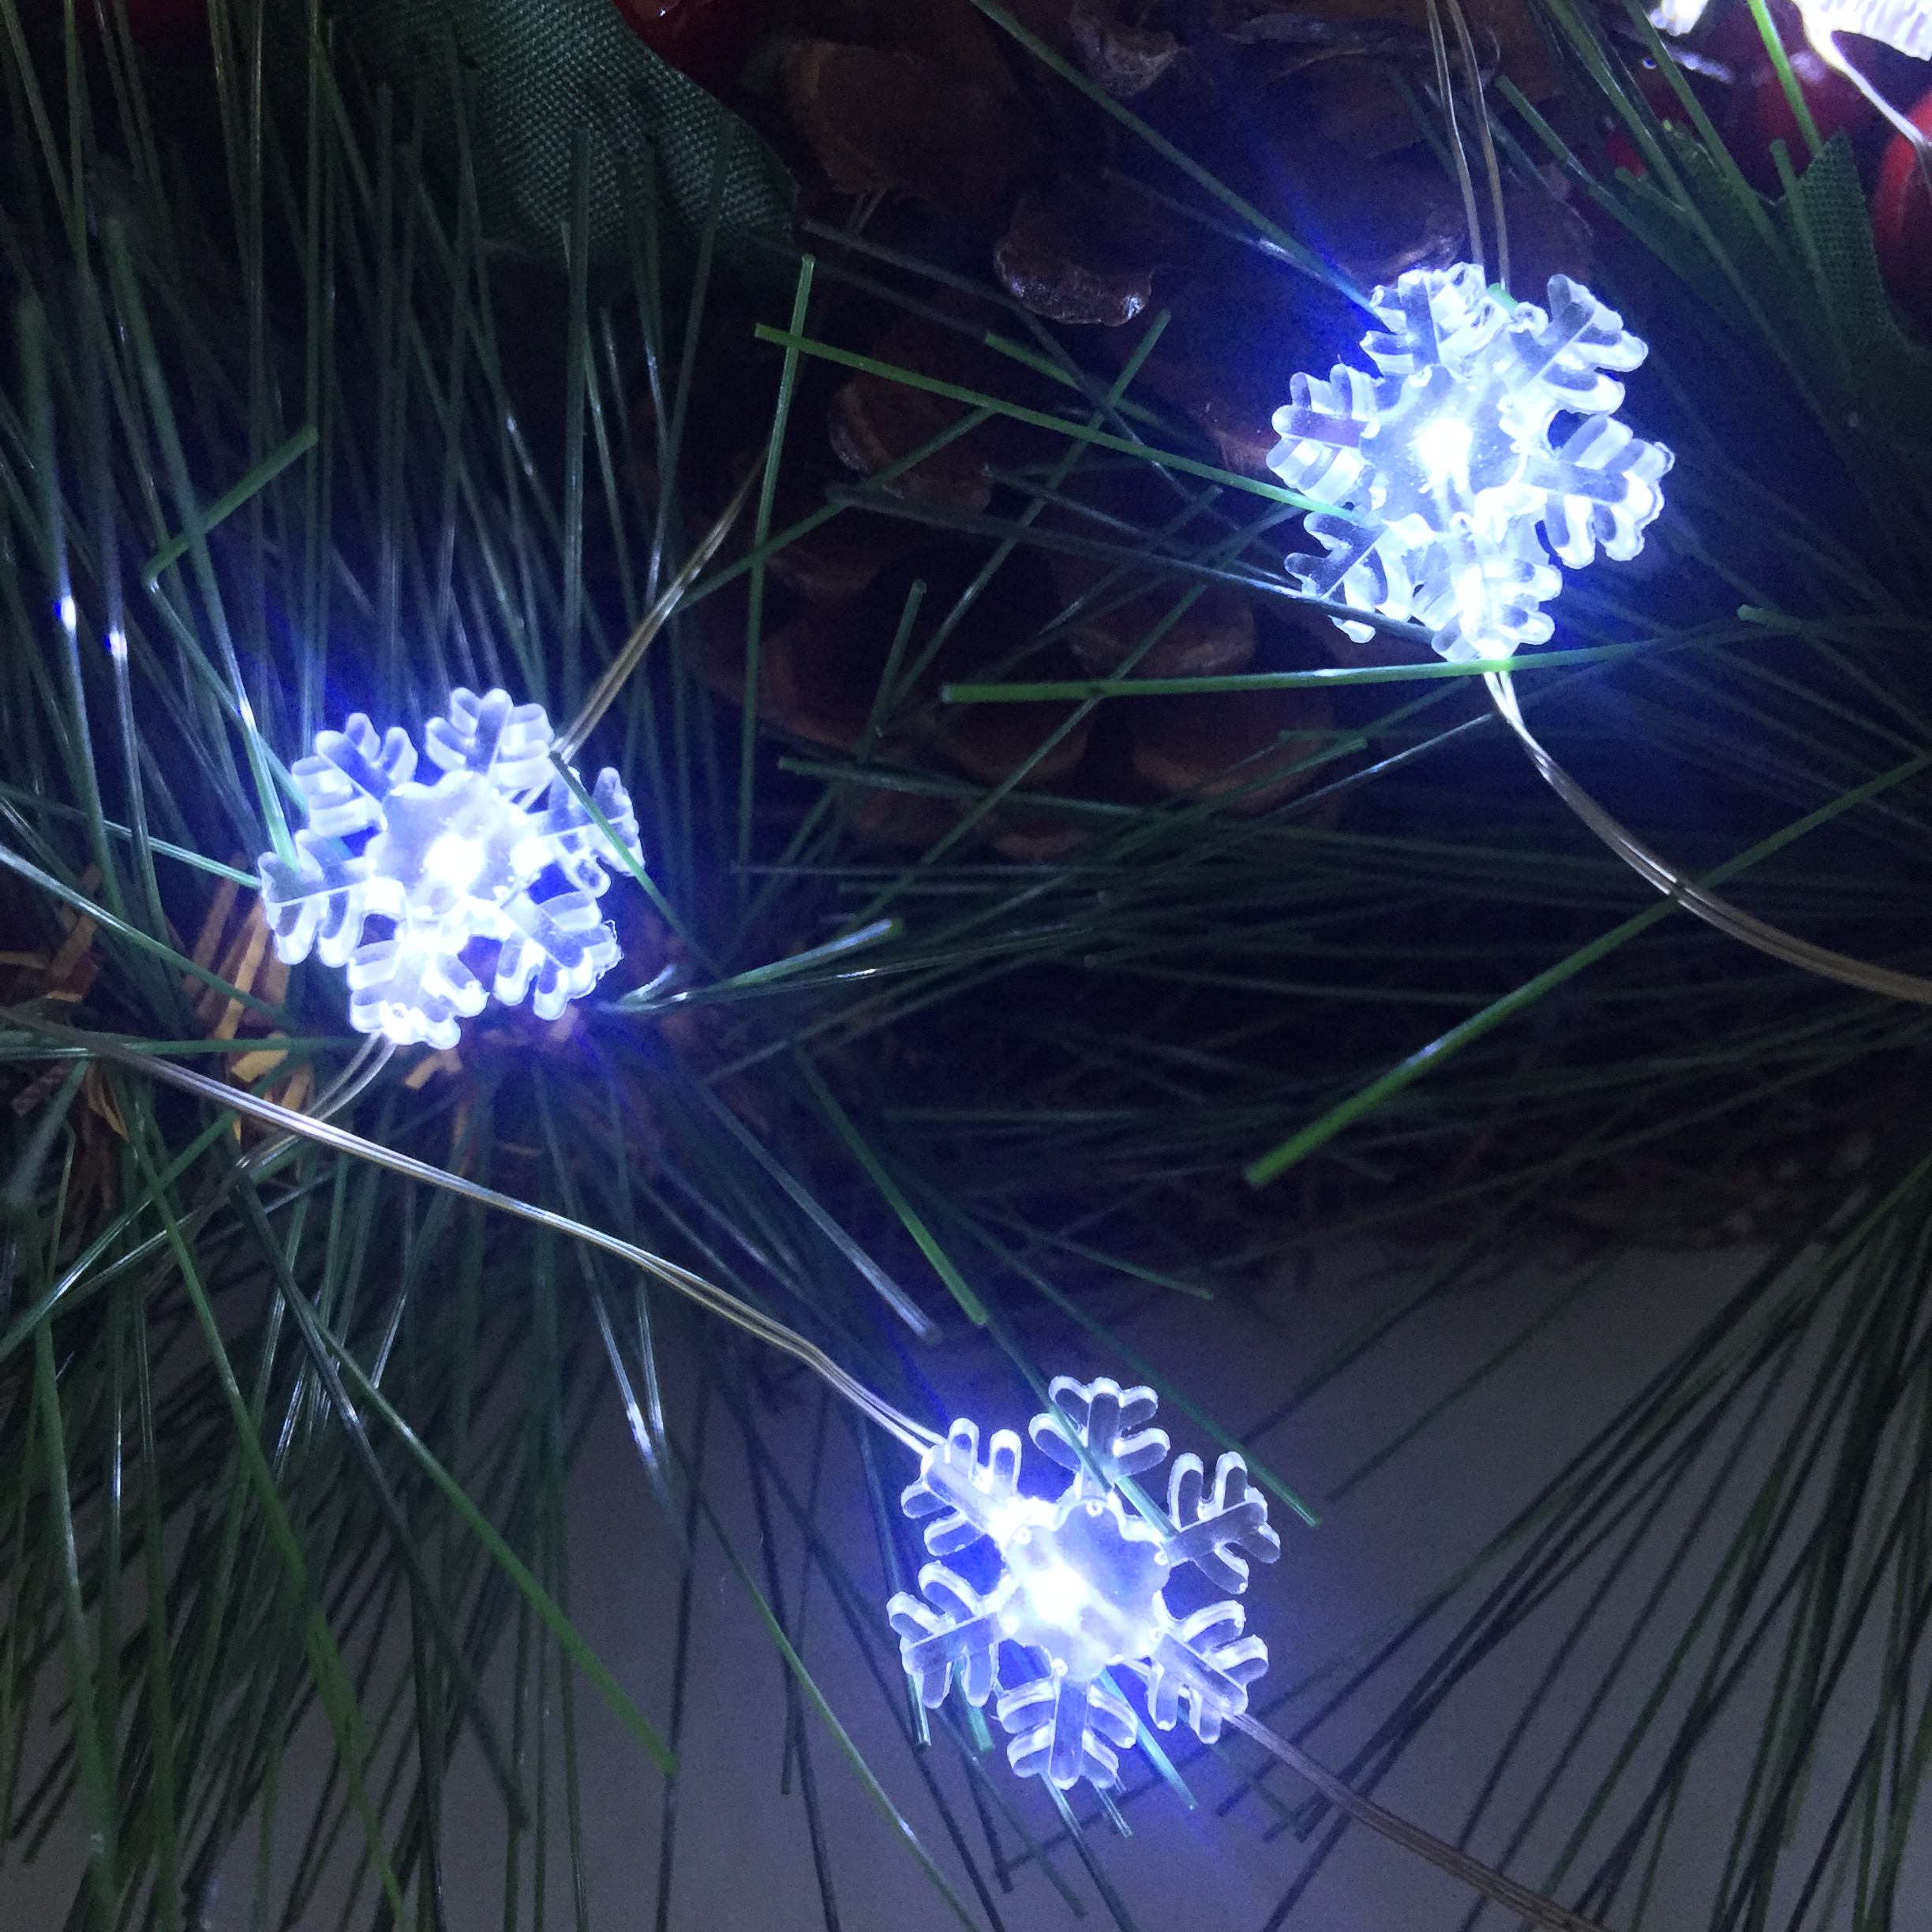 2 Pack Battery Operated Fairy Lights,Mini Snowflake Led Lights With Timer 6 Hours On And 18 Hours Off,30Leds,10Feet Silver Wire